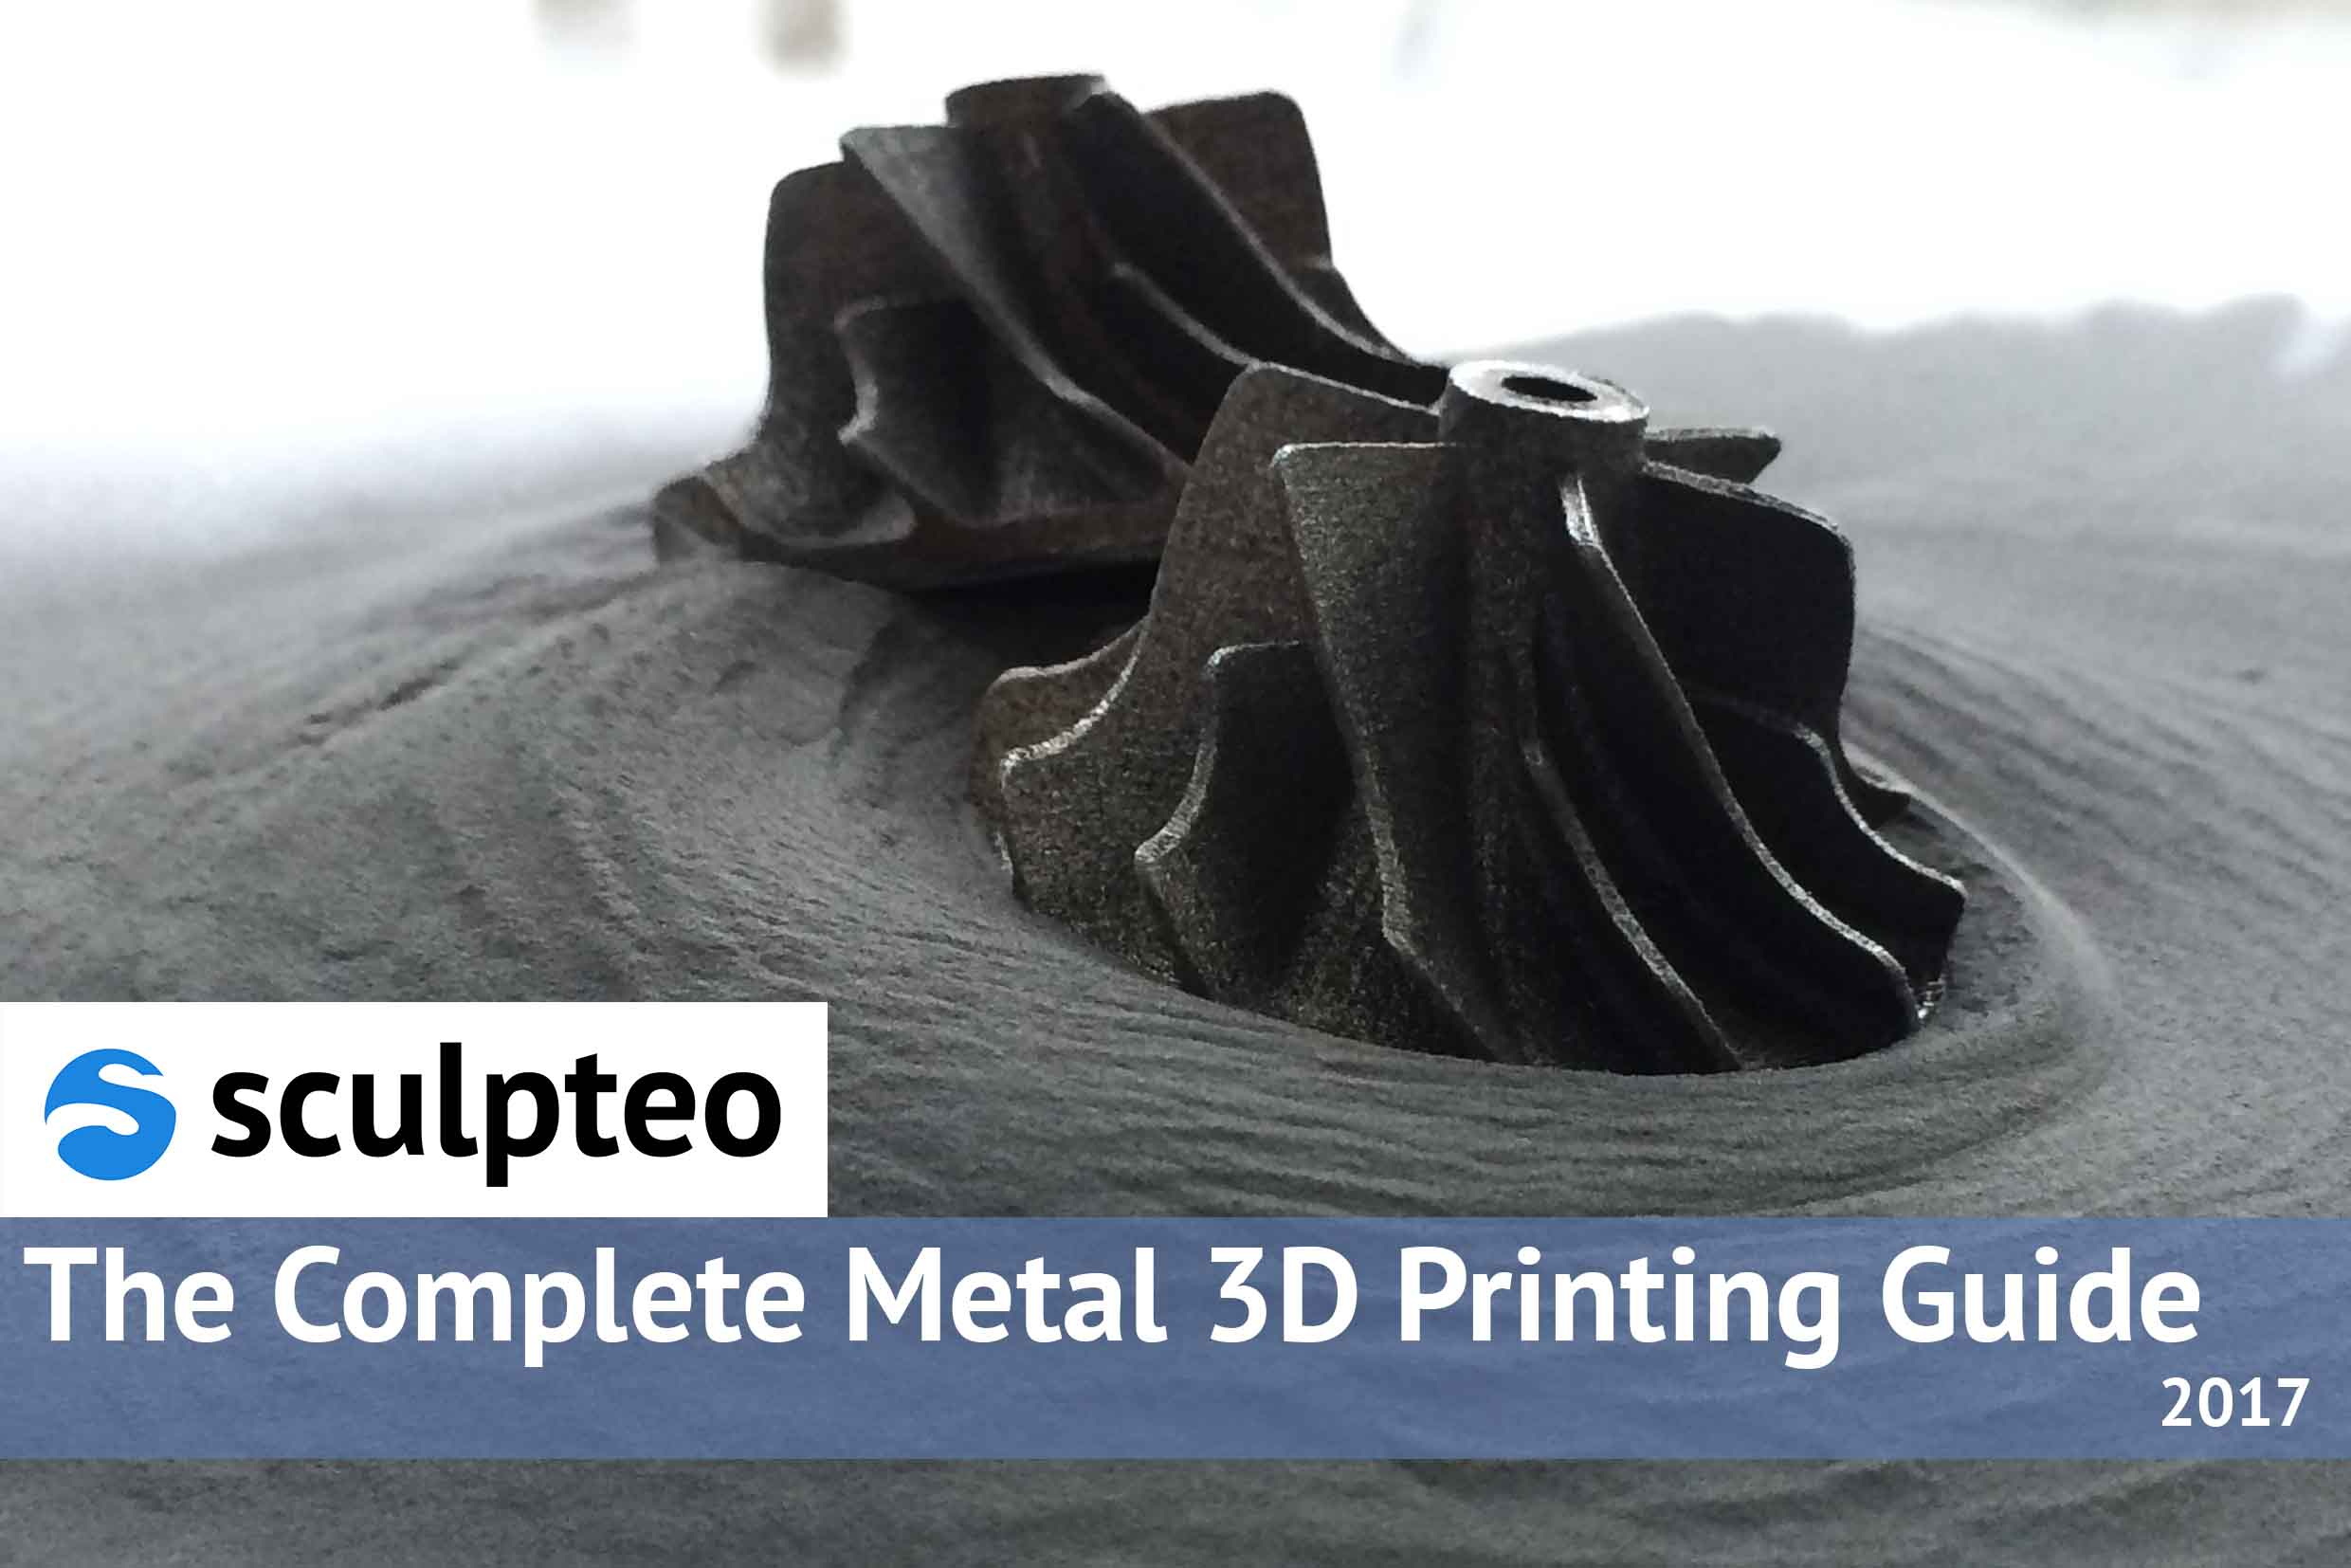 Learn more about the technologies and techniques behind metal 3D printing, the state of the market and Sculpteo's new Agile Metal Technology suite for metal 3D printing.